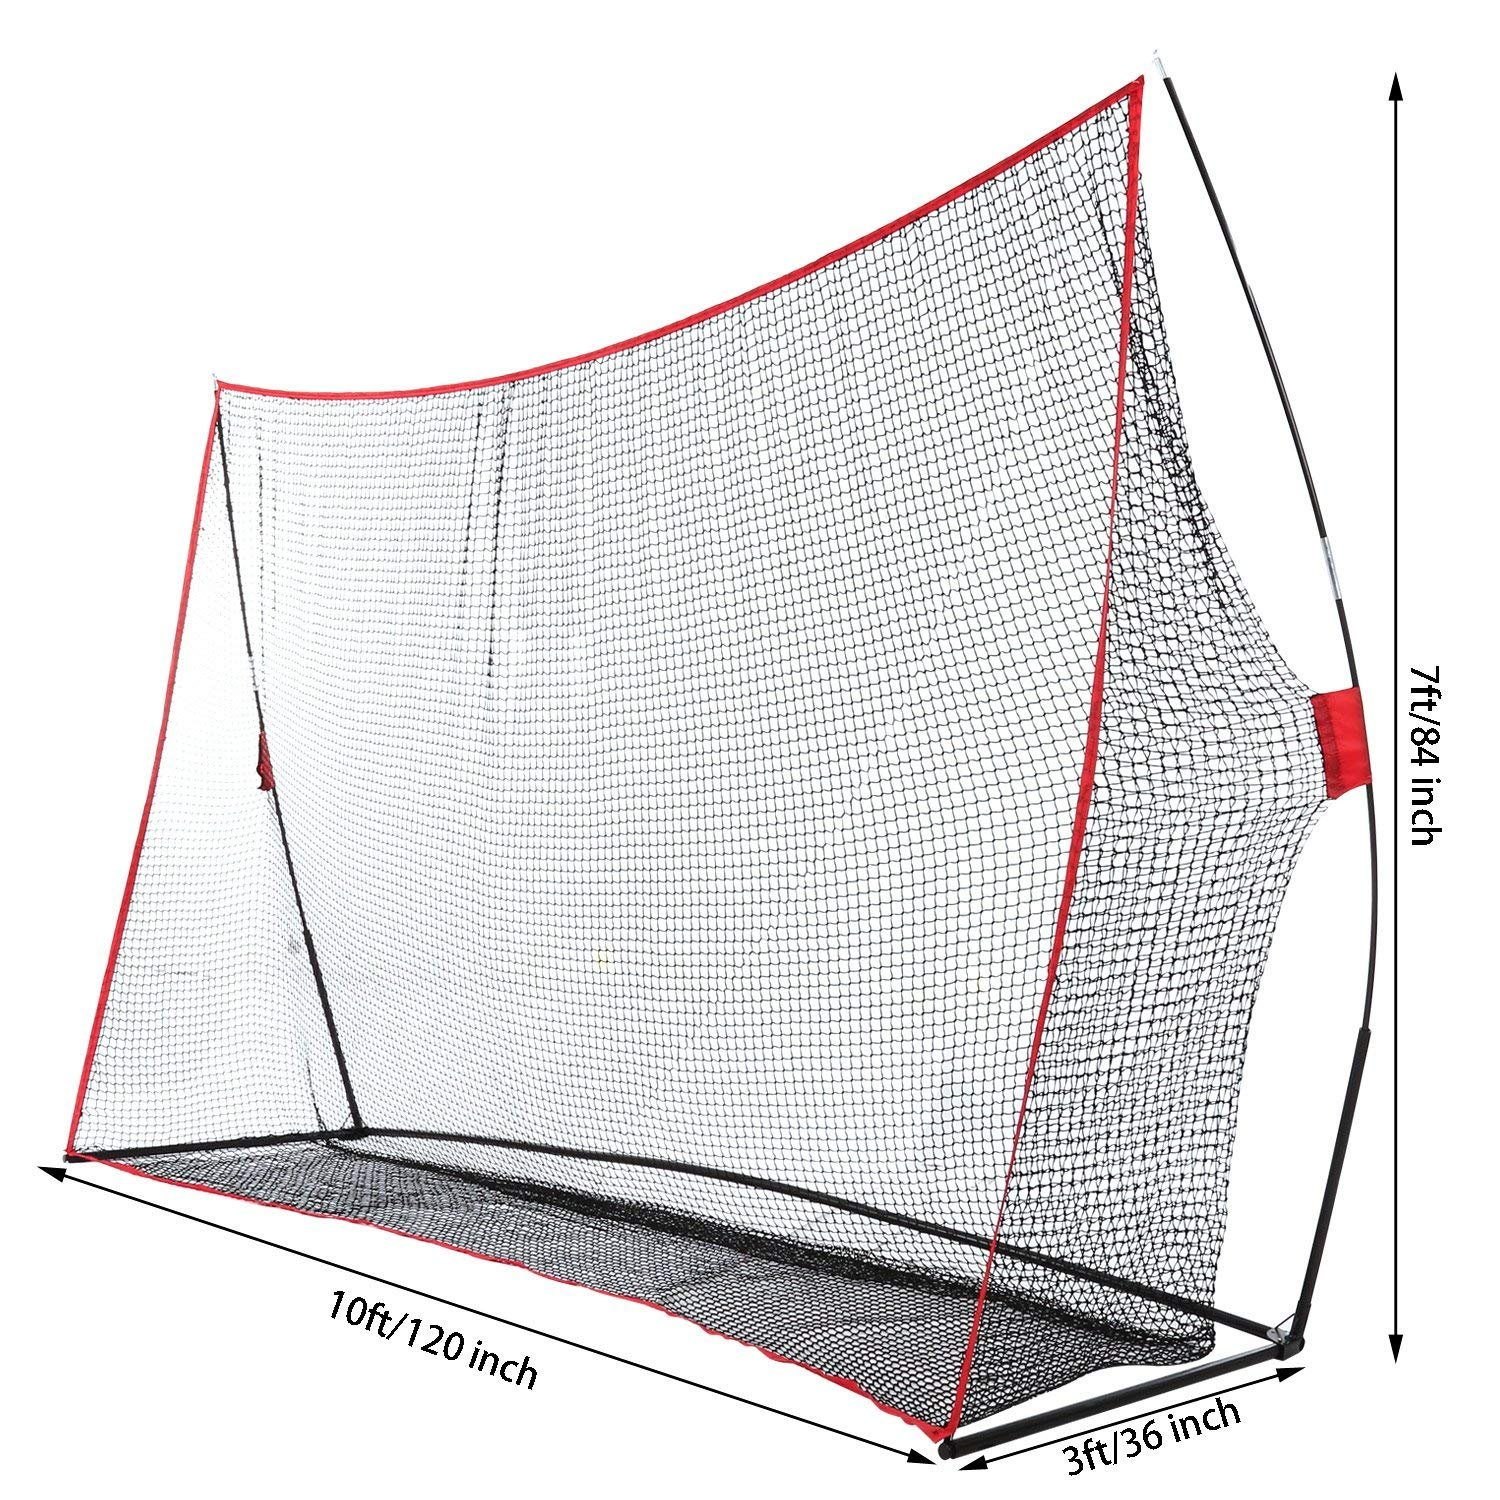 Fashine 10 x 7ft Golf/Baseball/ Soccer/Lacrosse Training Pitching Hitting Net Practice Driving Indoor and Outdoor with Bow Frame and Carrying Bag (US Stock) by Fashine (Image #3)